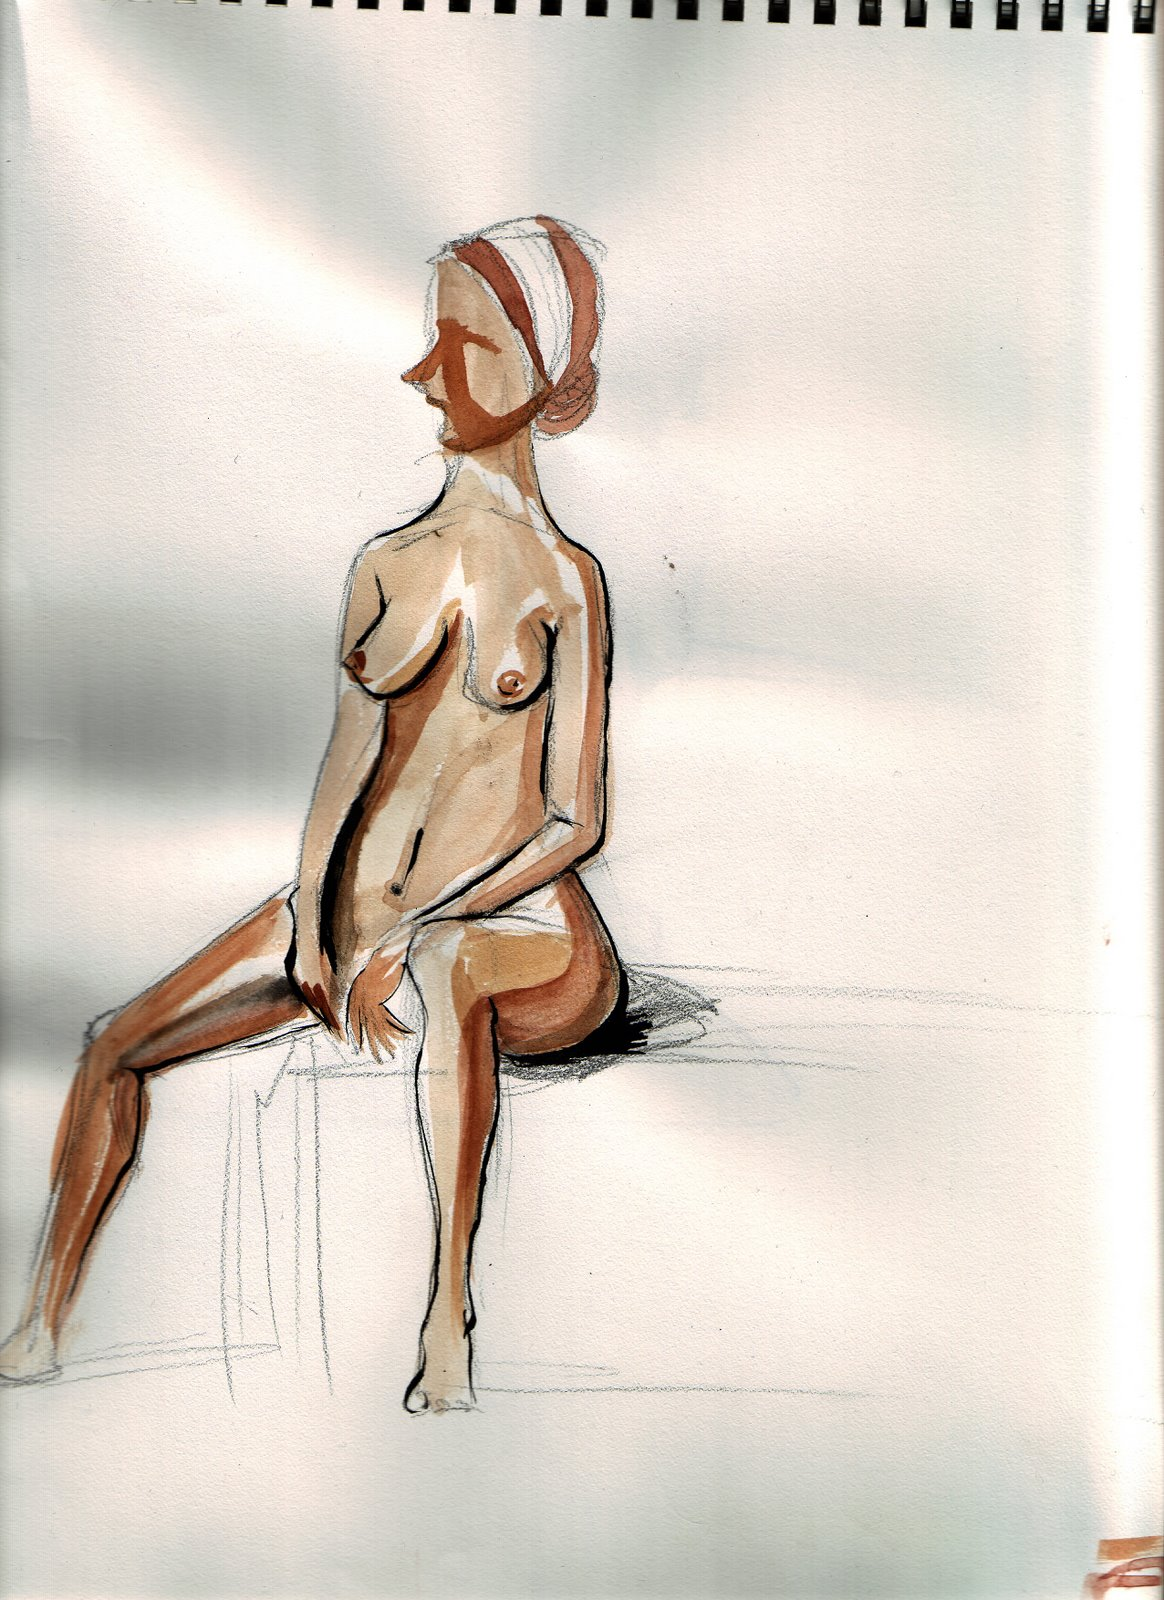 [lifedrawing2]